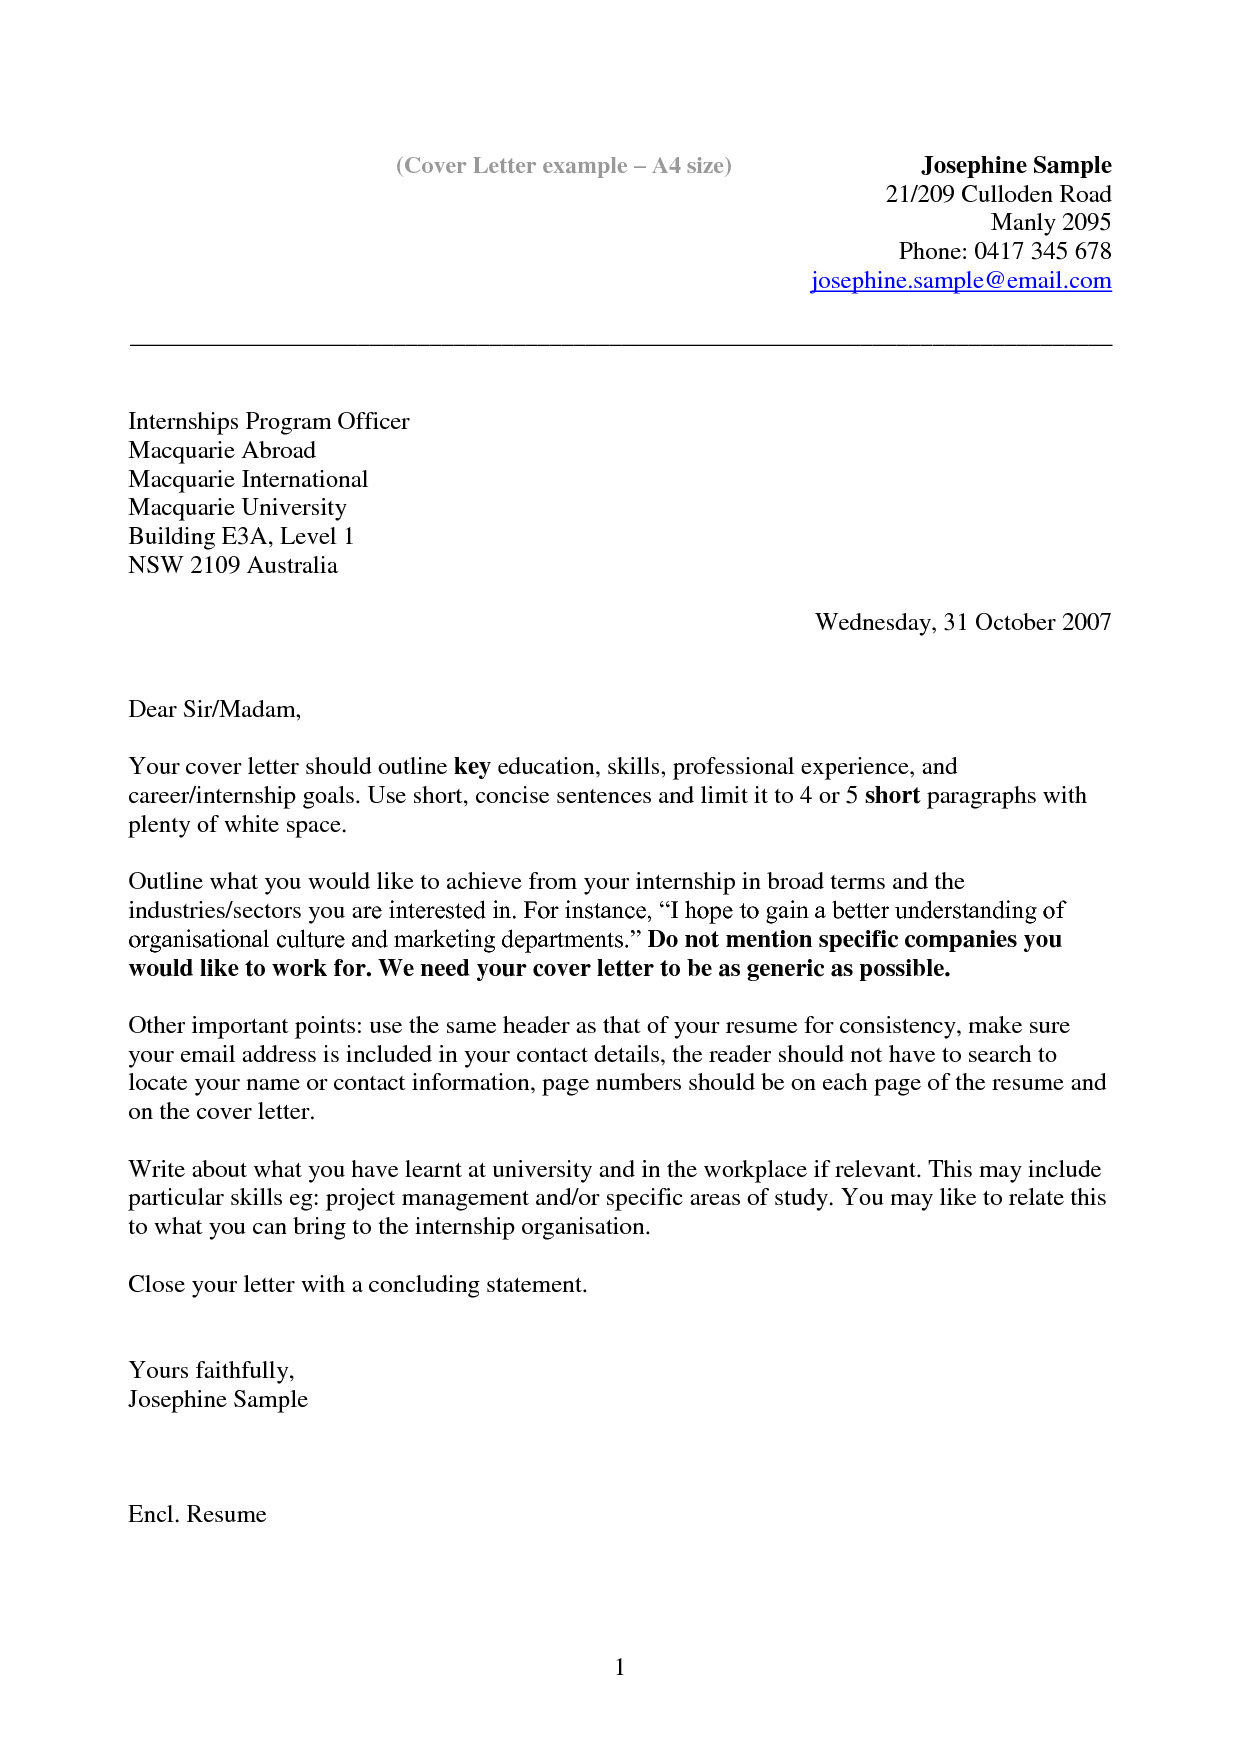 resume cover letter sample best templatecover letter samples for - Resume Cover Letter Sample